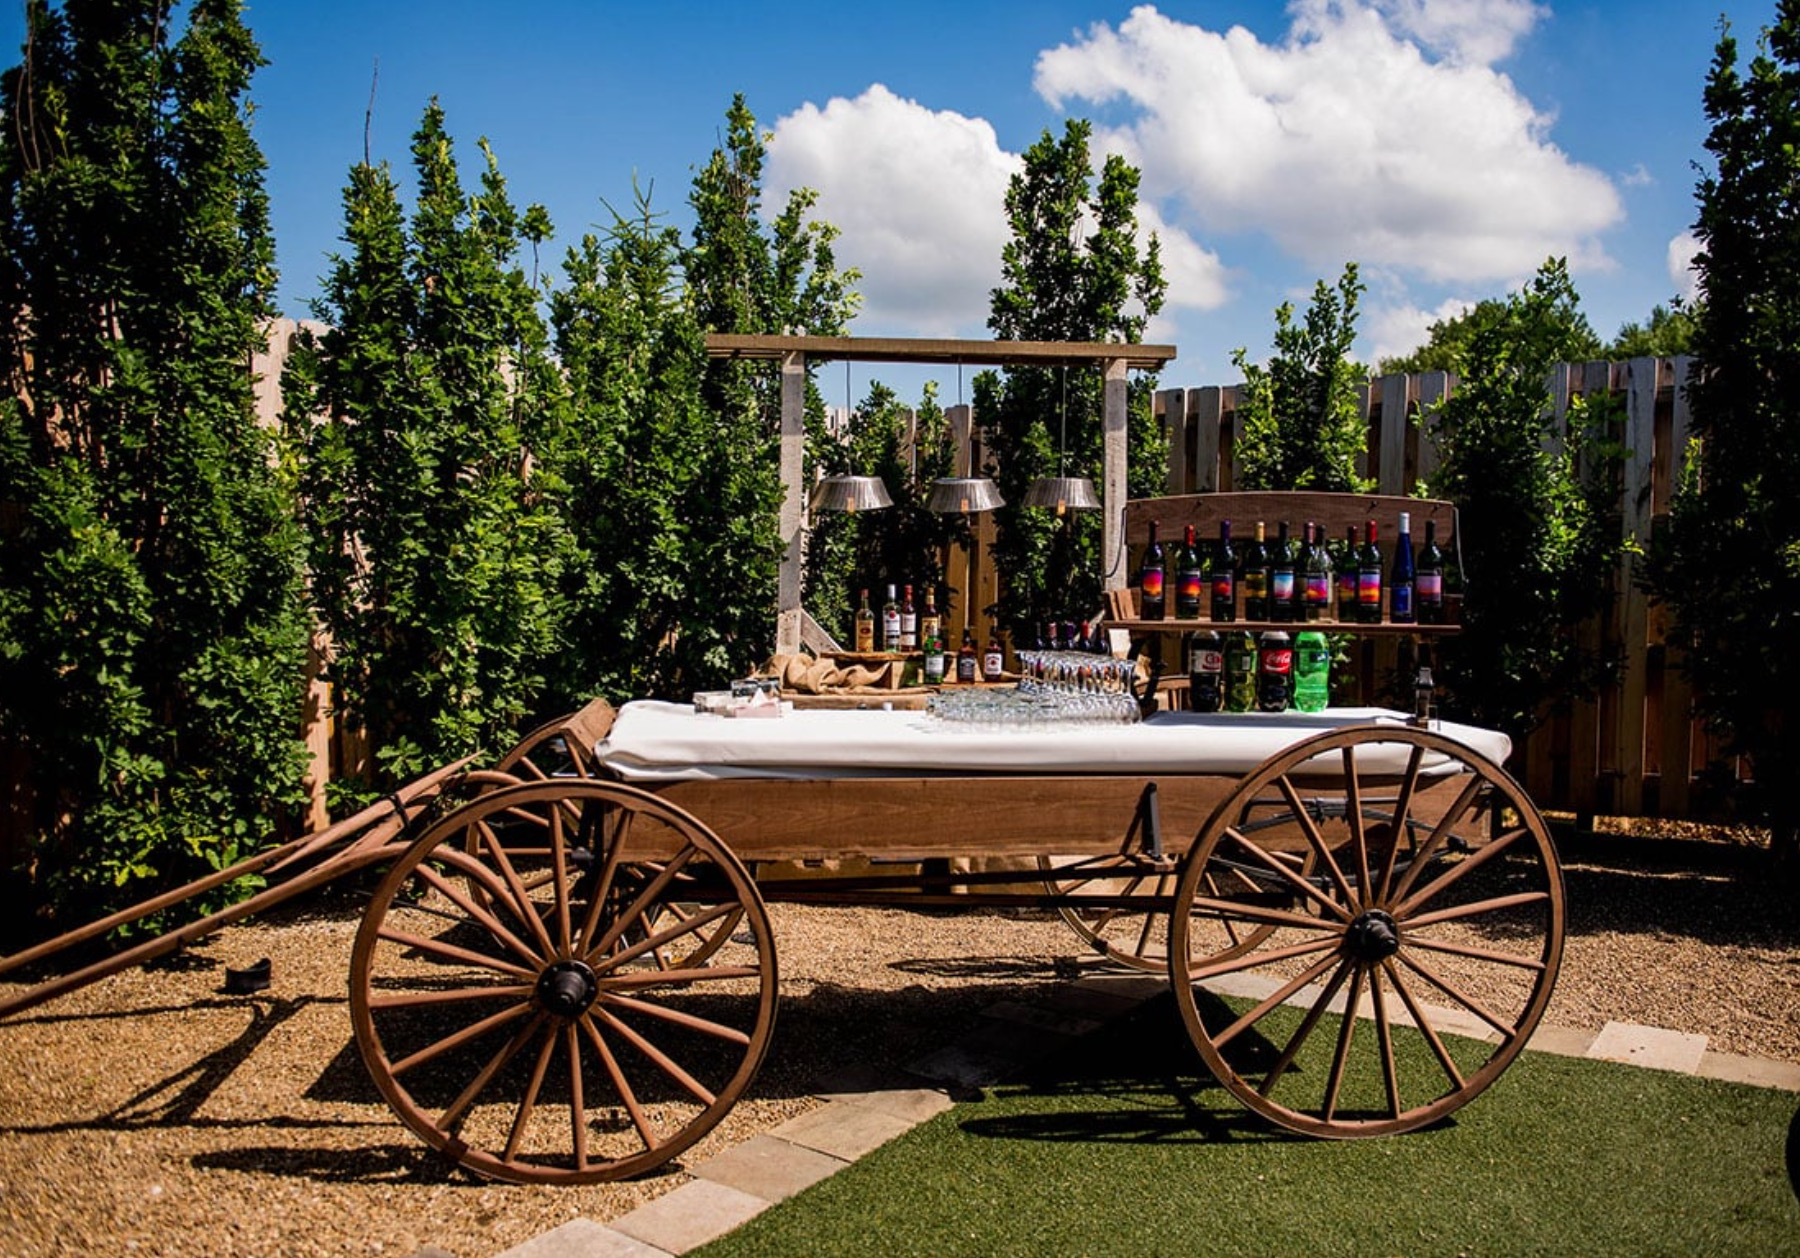 wooden wagon being used as a bar